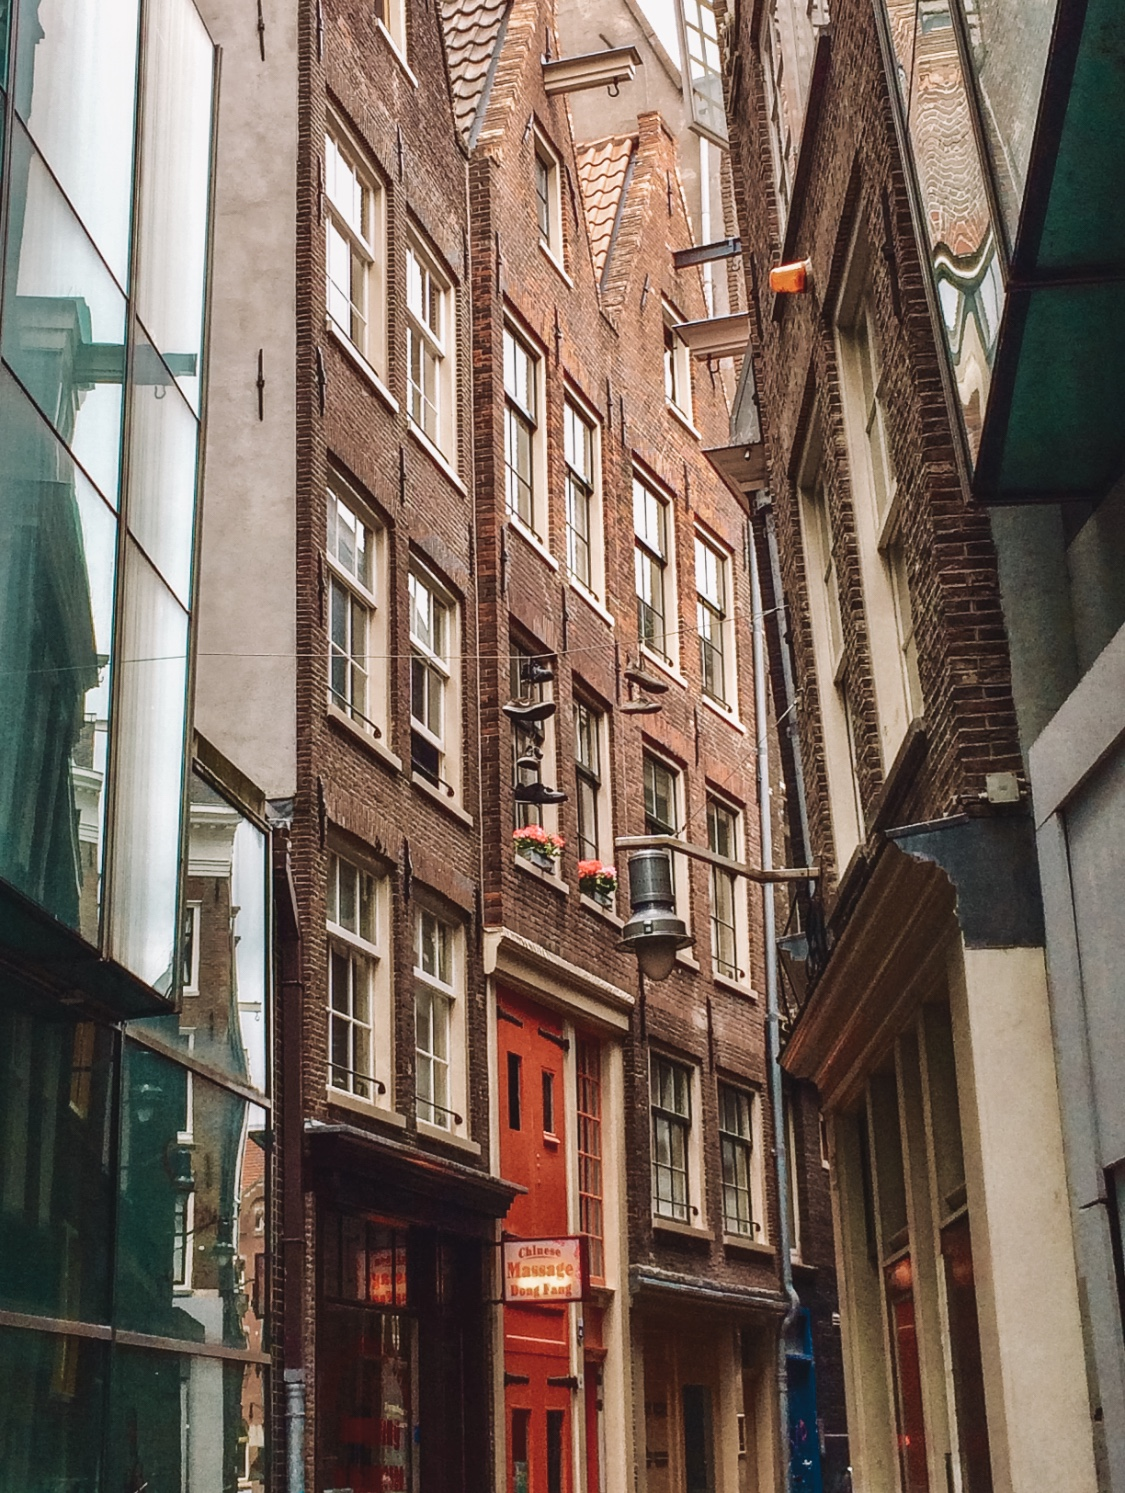 Things to do in Amsterdam - explore the narrow alleys